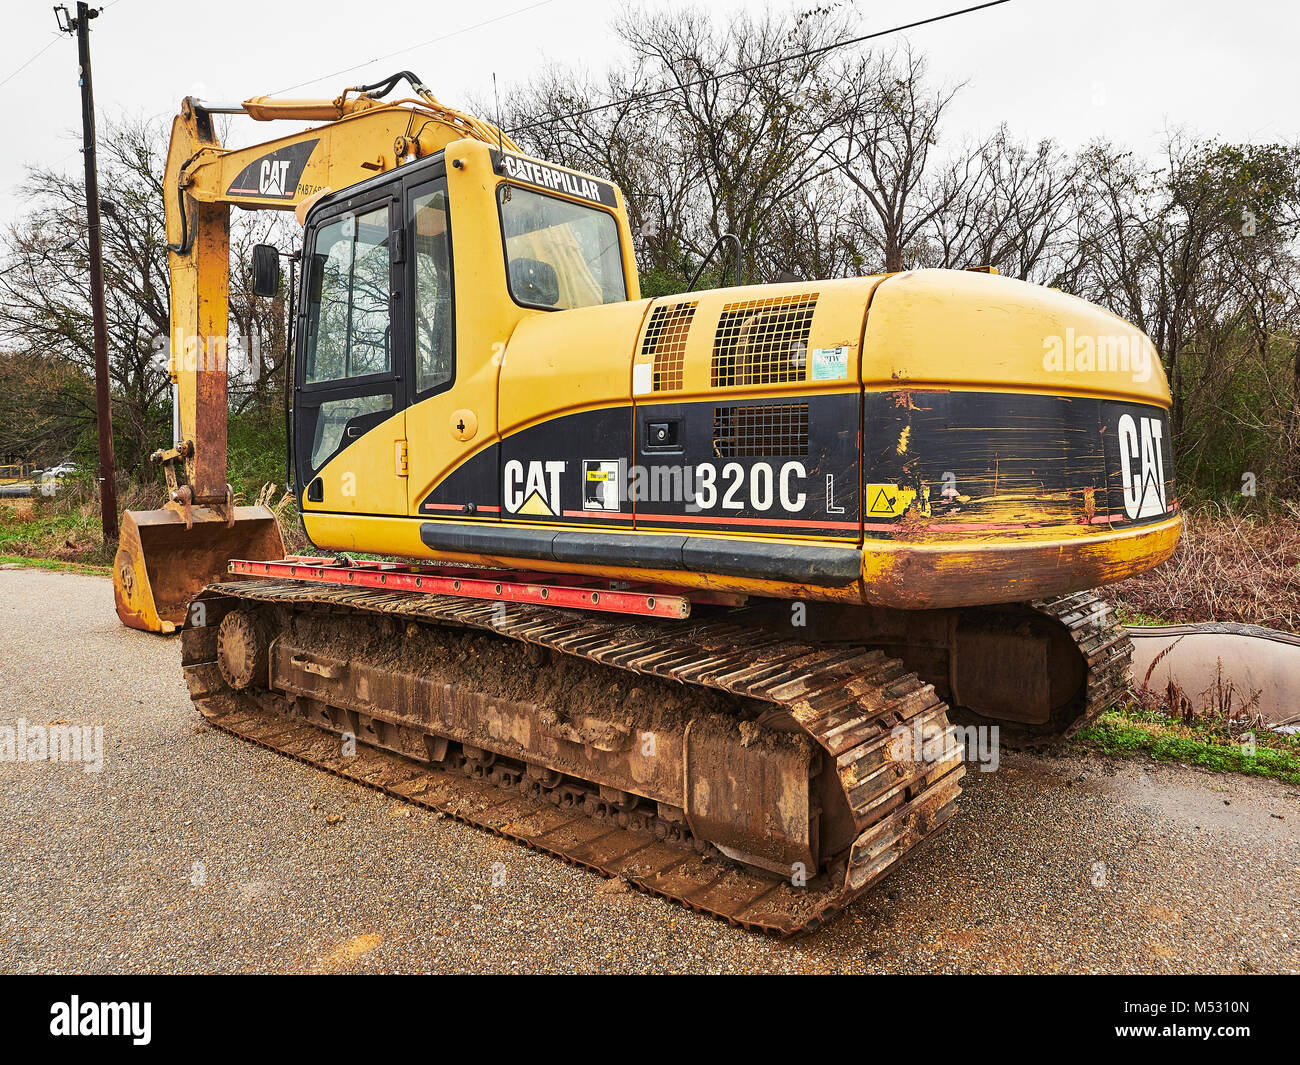 CAT 320C heavy duty digger, hydraulic excavator, a very large piece of construction machinery sitting idle in Montgomery - Stock Image